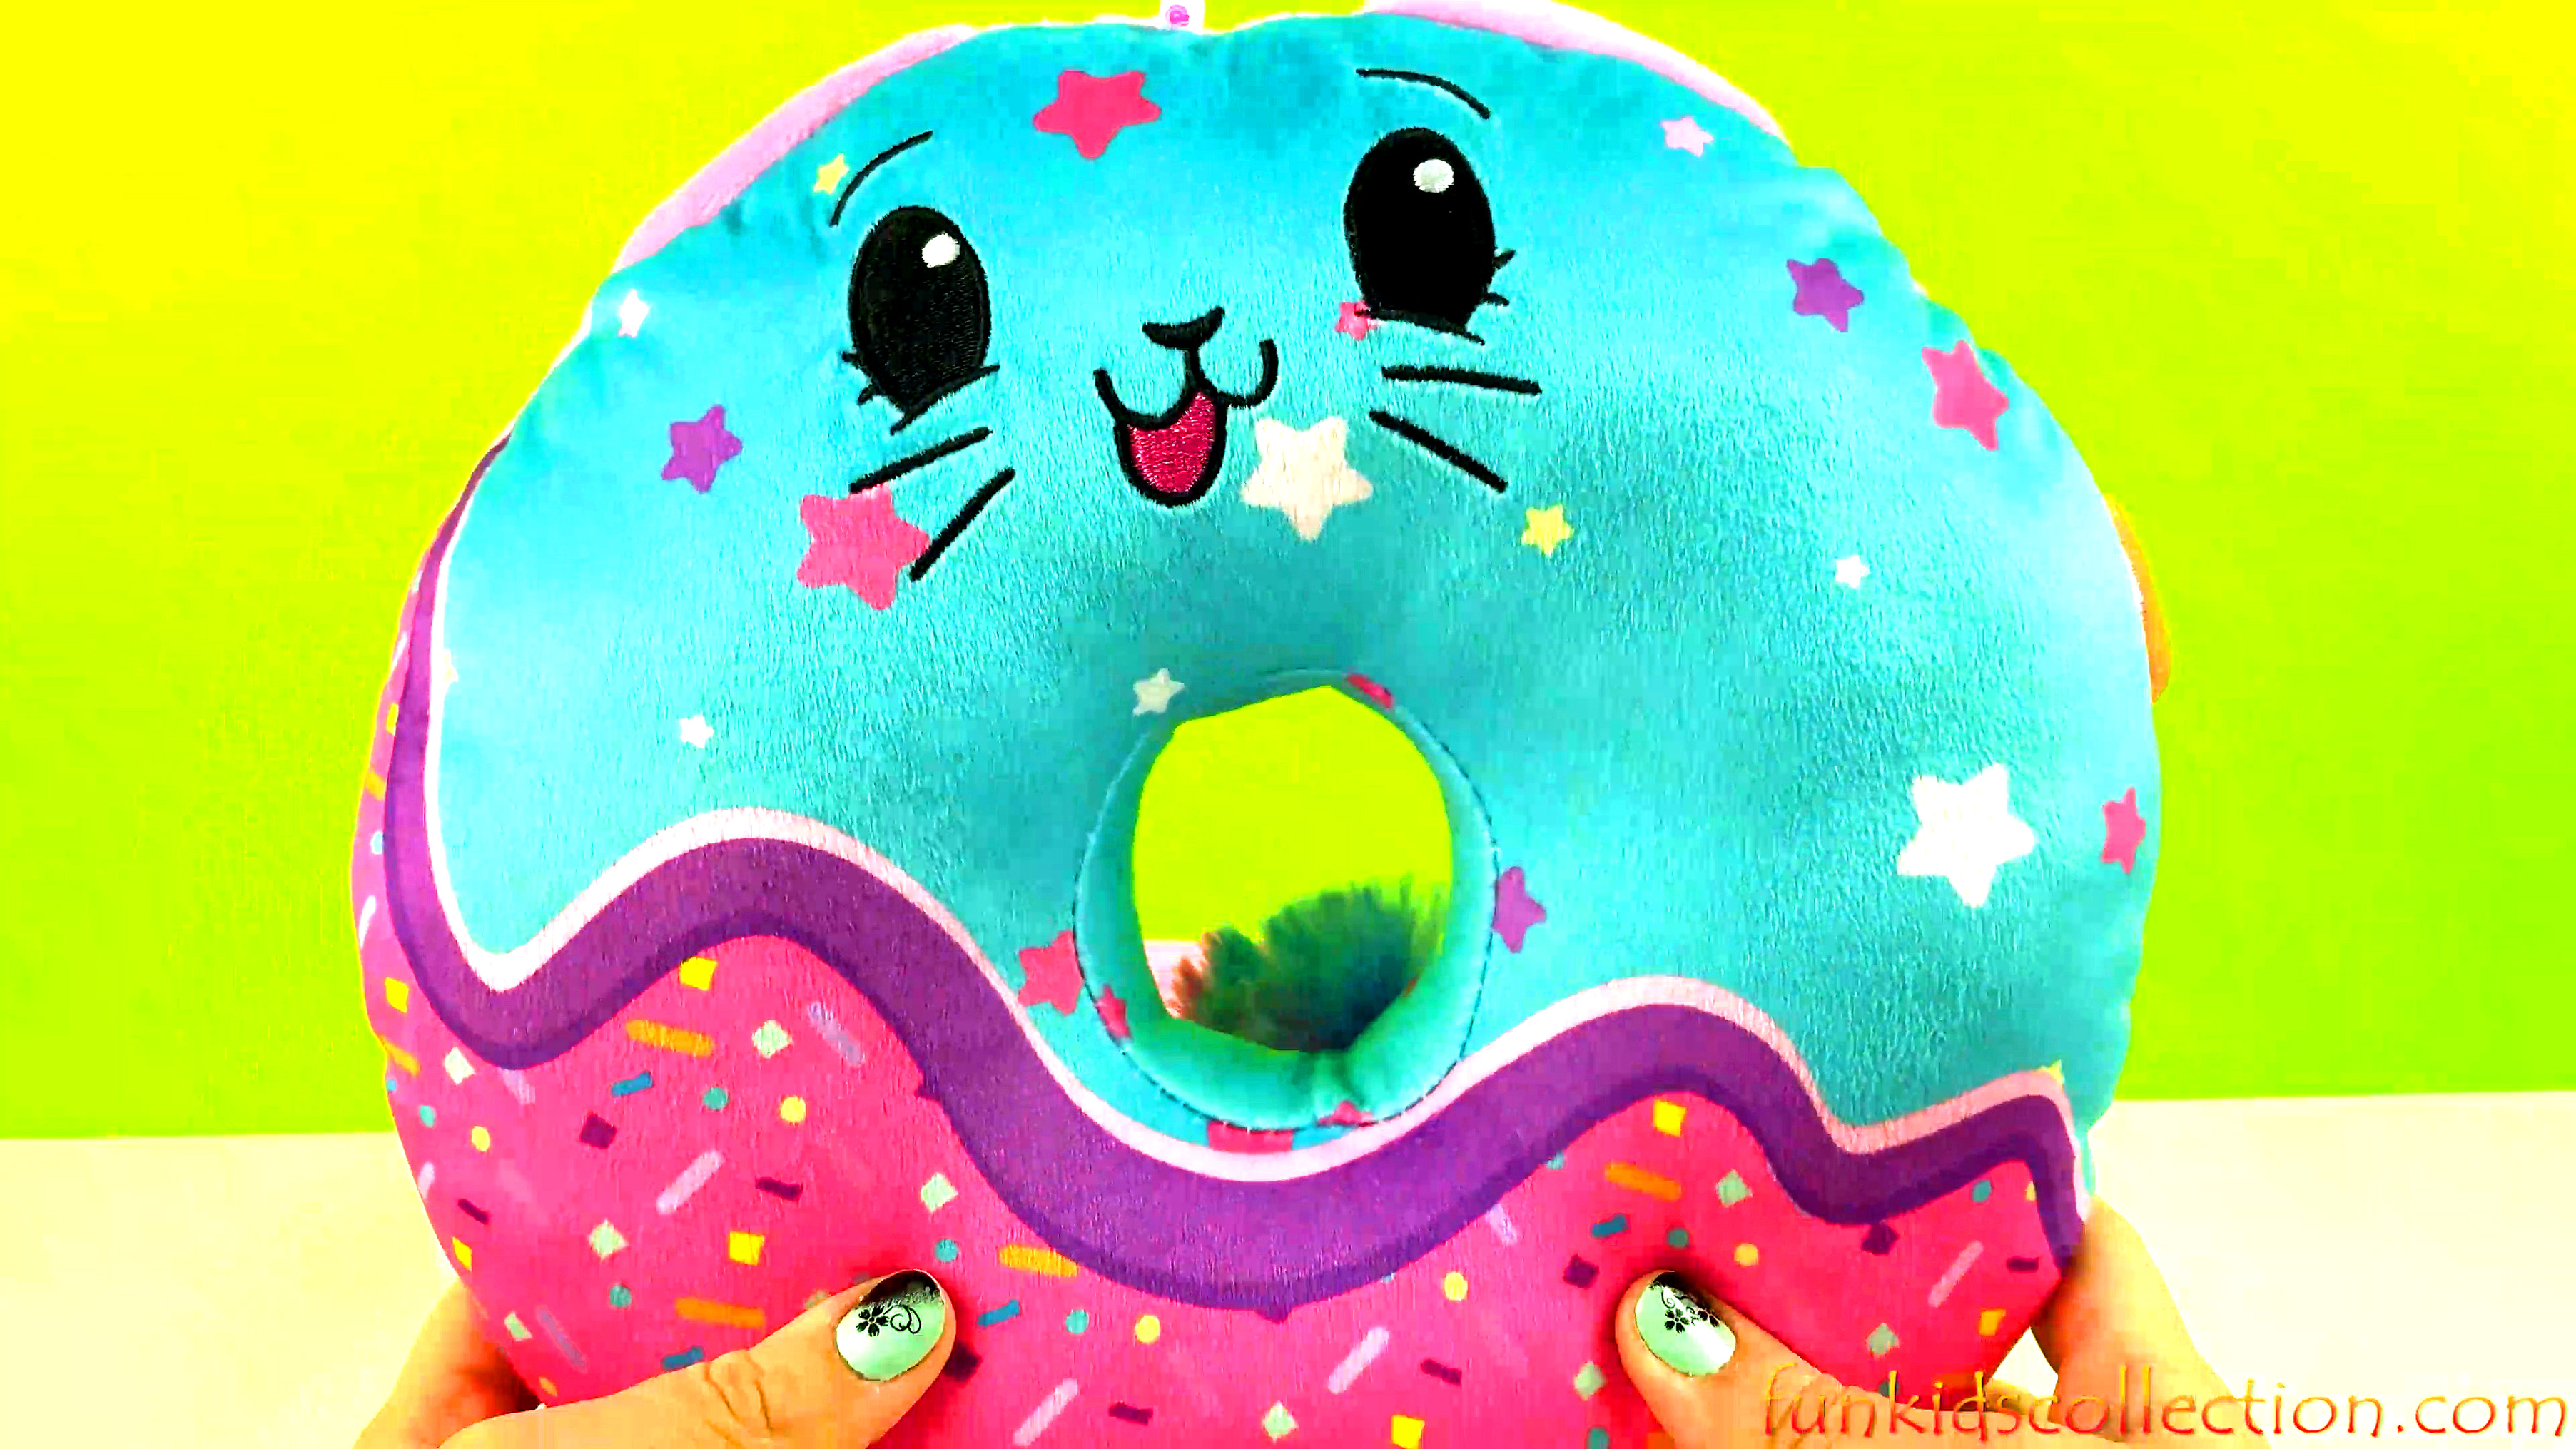 Pikmi Pops Sweetie Paw The Sparkly Cat Unboxing Pikmi Pops Surprise Doughmis Jumbo Donut Plush